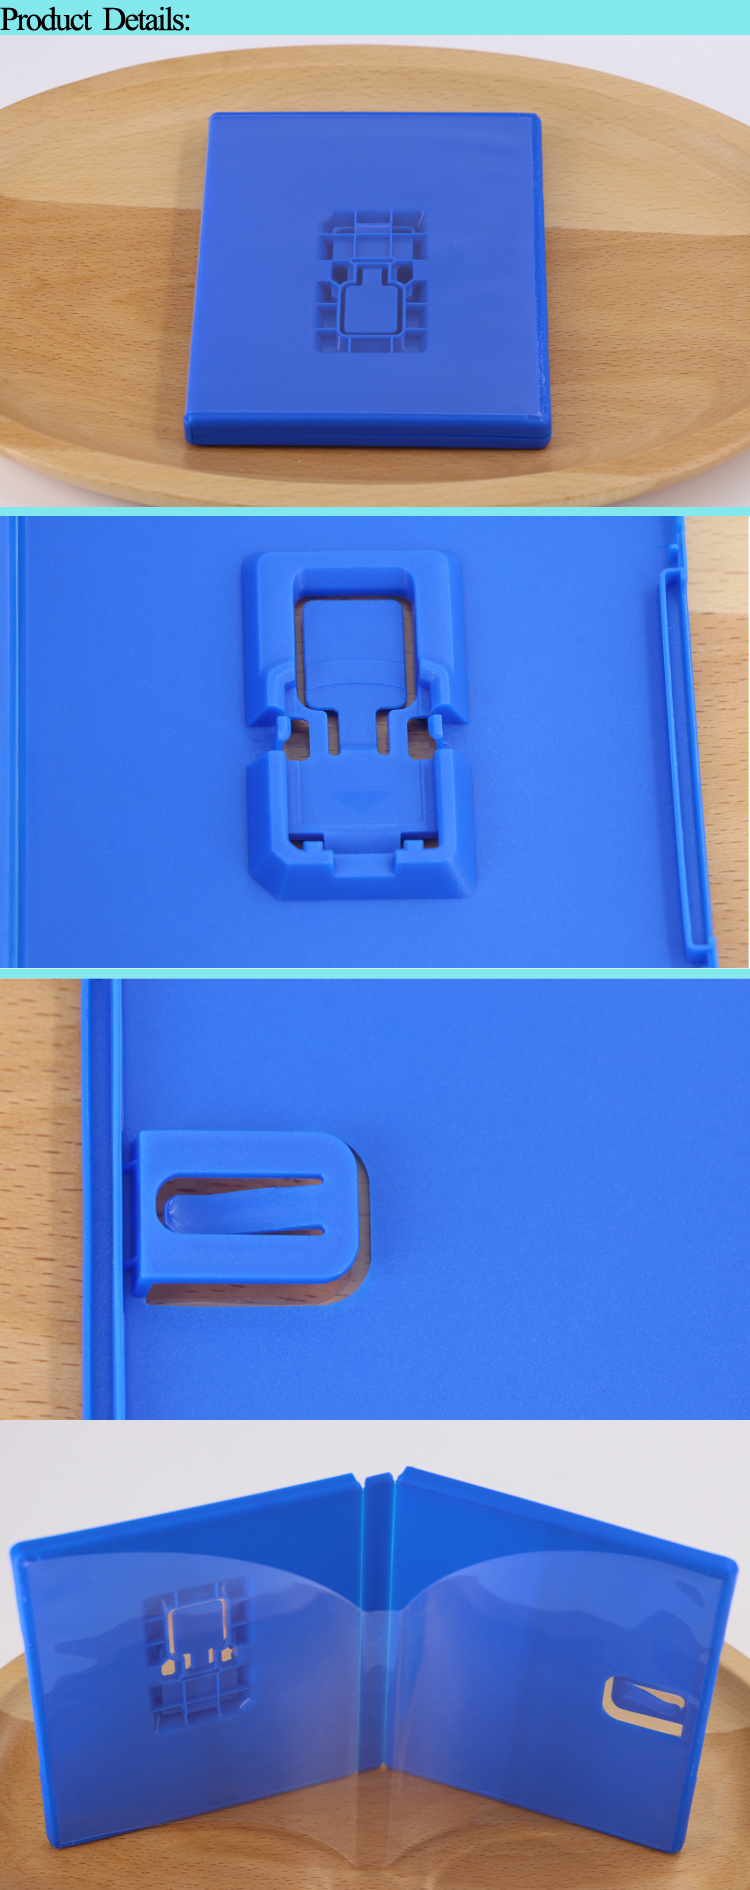 Sunshing Wholesale For Playstation Vita Game Box Blue Color Ps Vita Case  For Ps Vita - Buy Ps Vita Case,Ps Vita,Game Box Product on Alibaba com